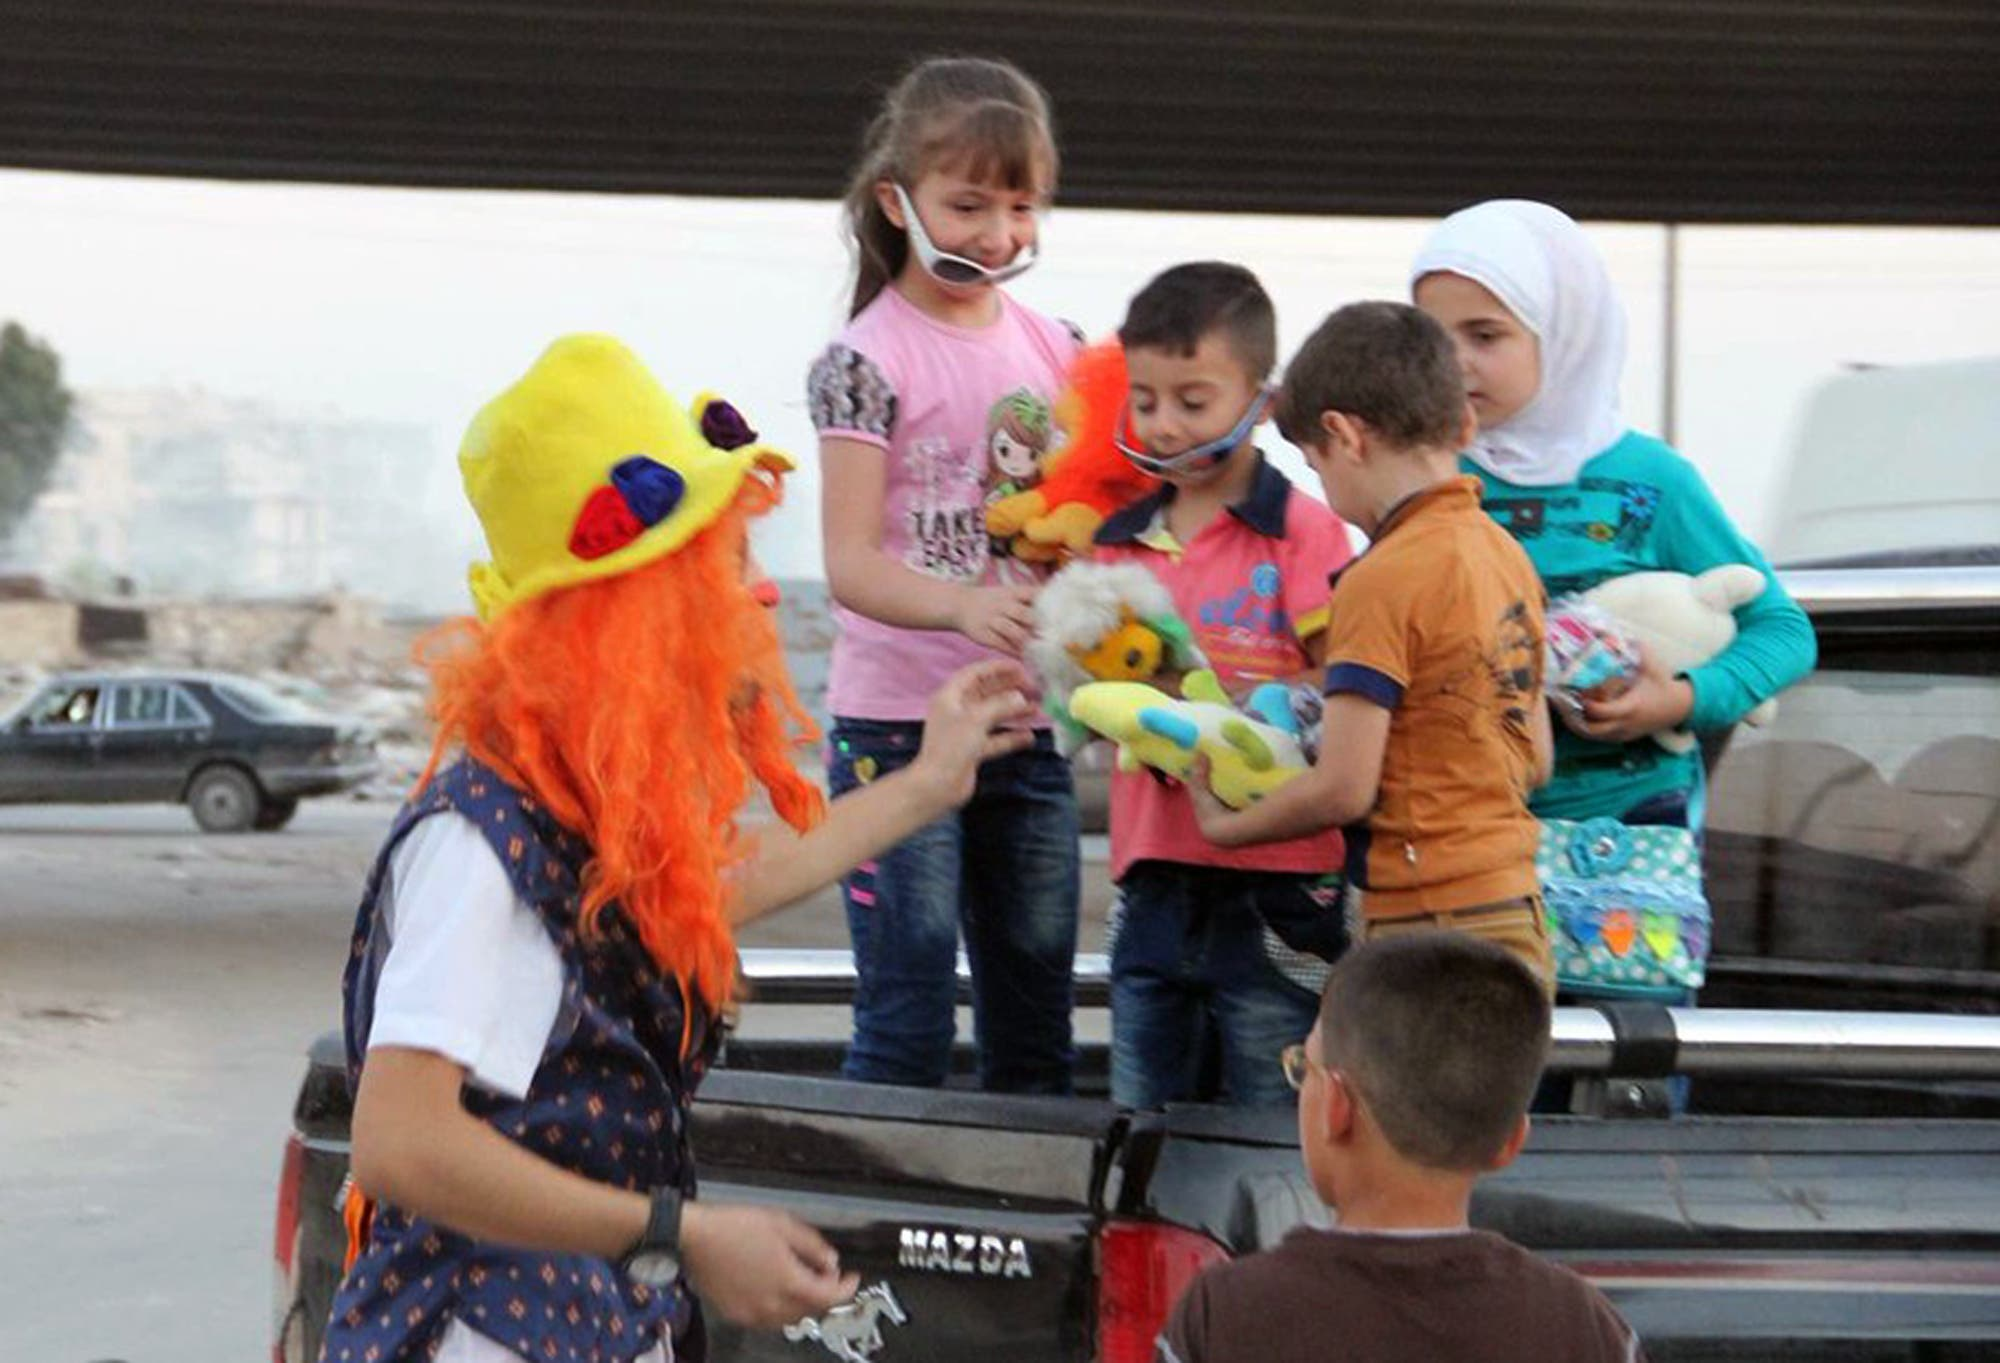 This undated photo courtesy of Ahmad al-Khatib, a media activist in Aleppo, shows Syrian social worker Anas al-Basha, 24, dressed as a clown, distributing toys to children in Aleppo, Syria. AP